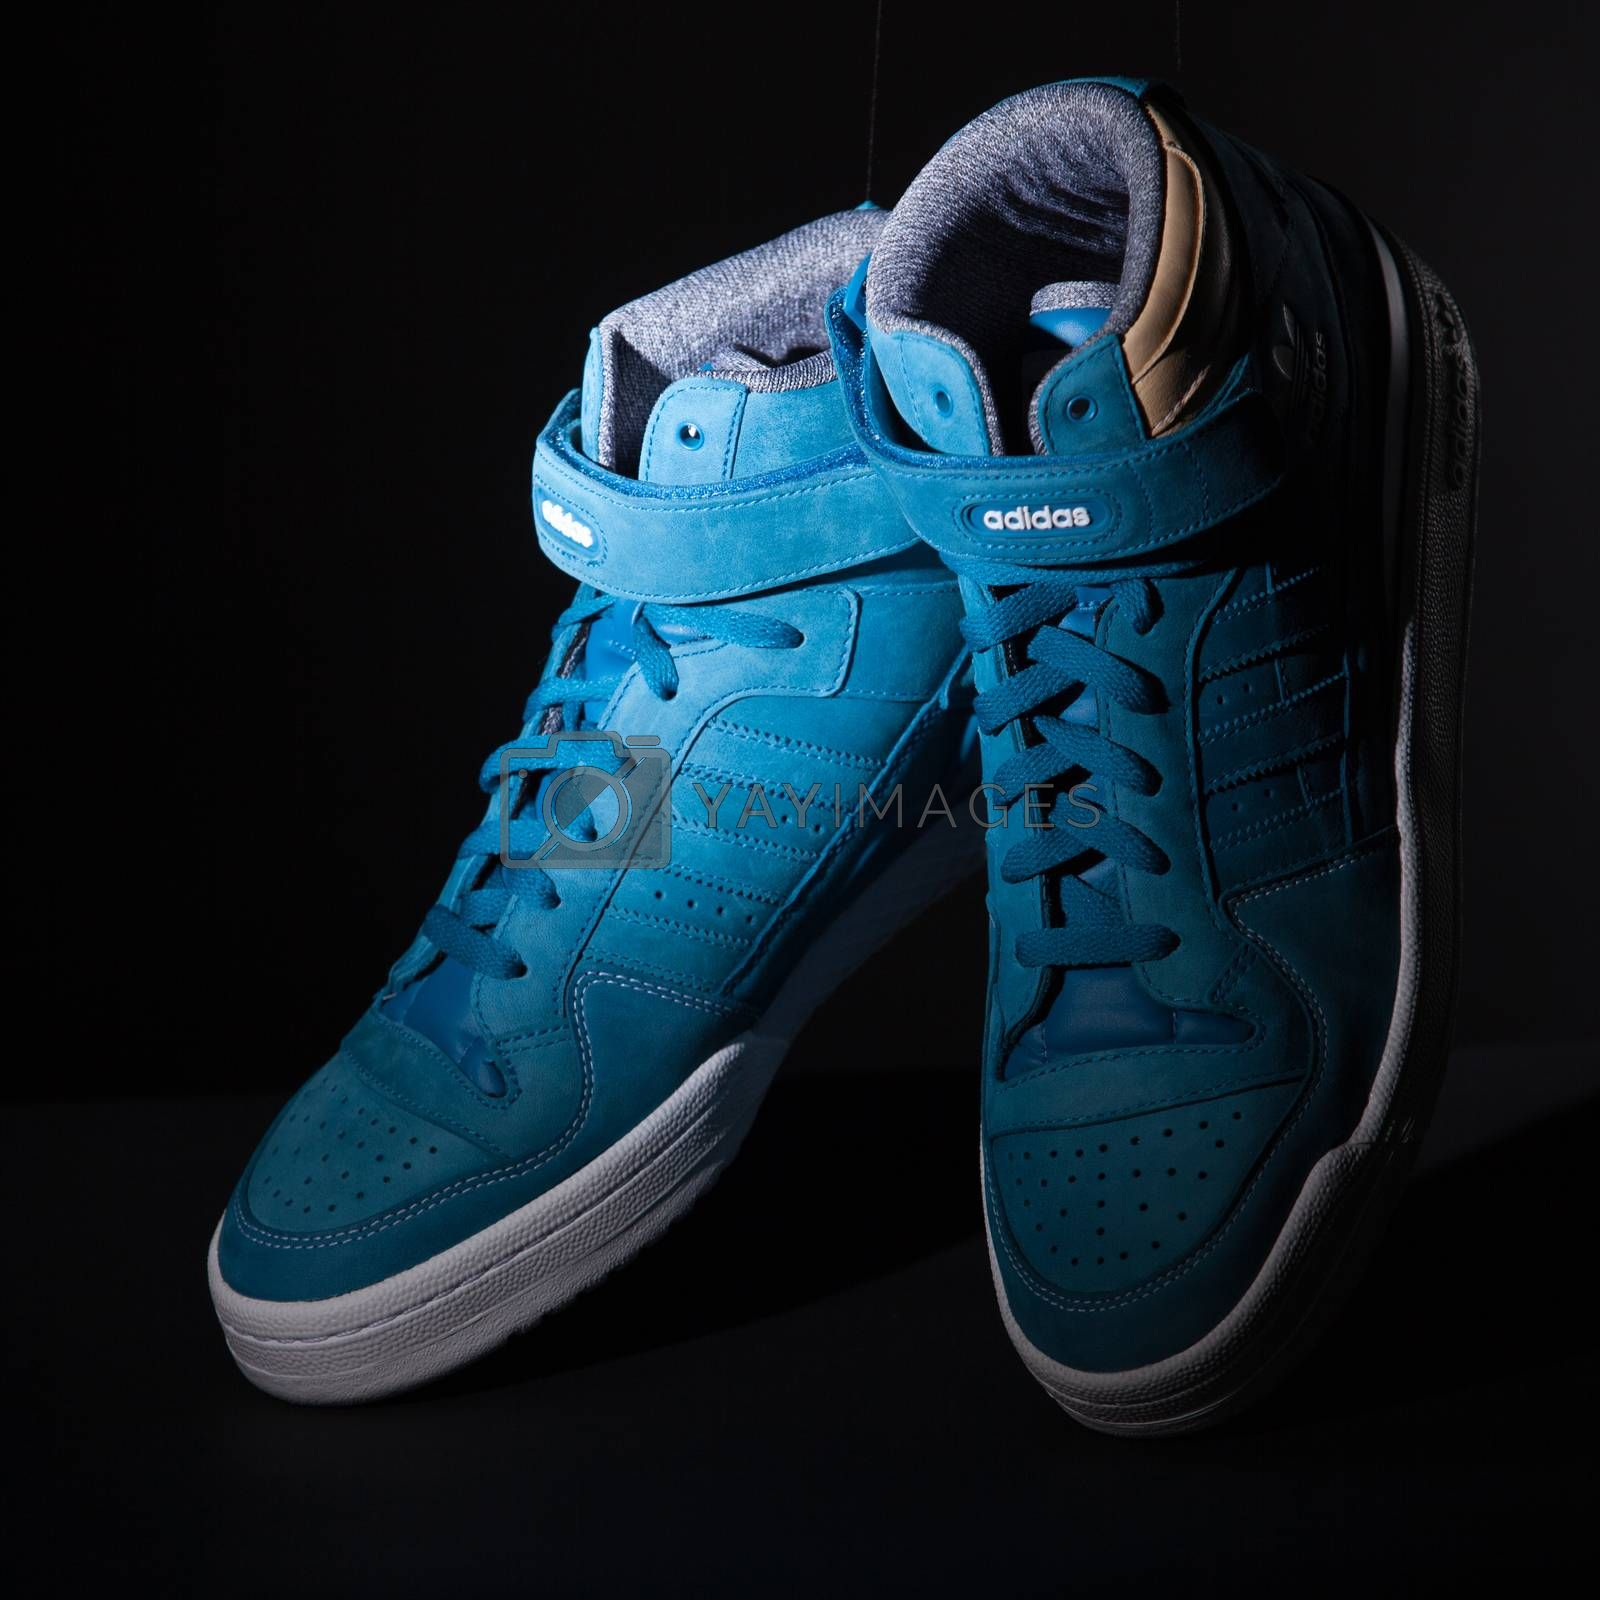 Ukraine, Kiev - FEBRUARY 2, 2015: Adidas origibal. Picture of a pair of blue trainers over a black background